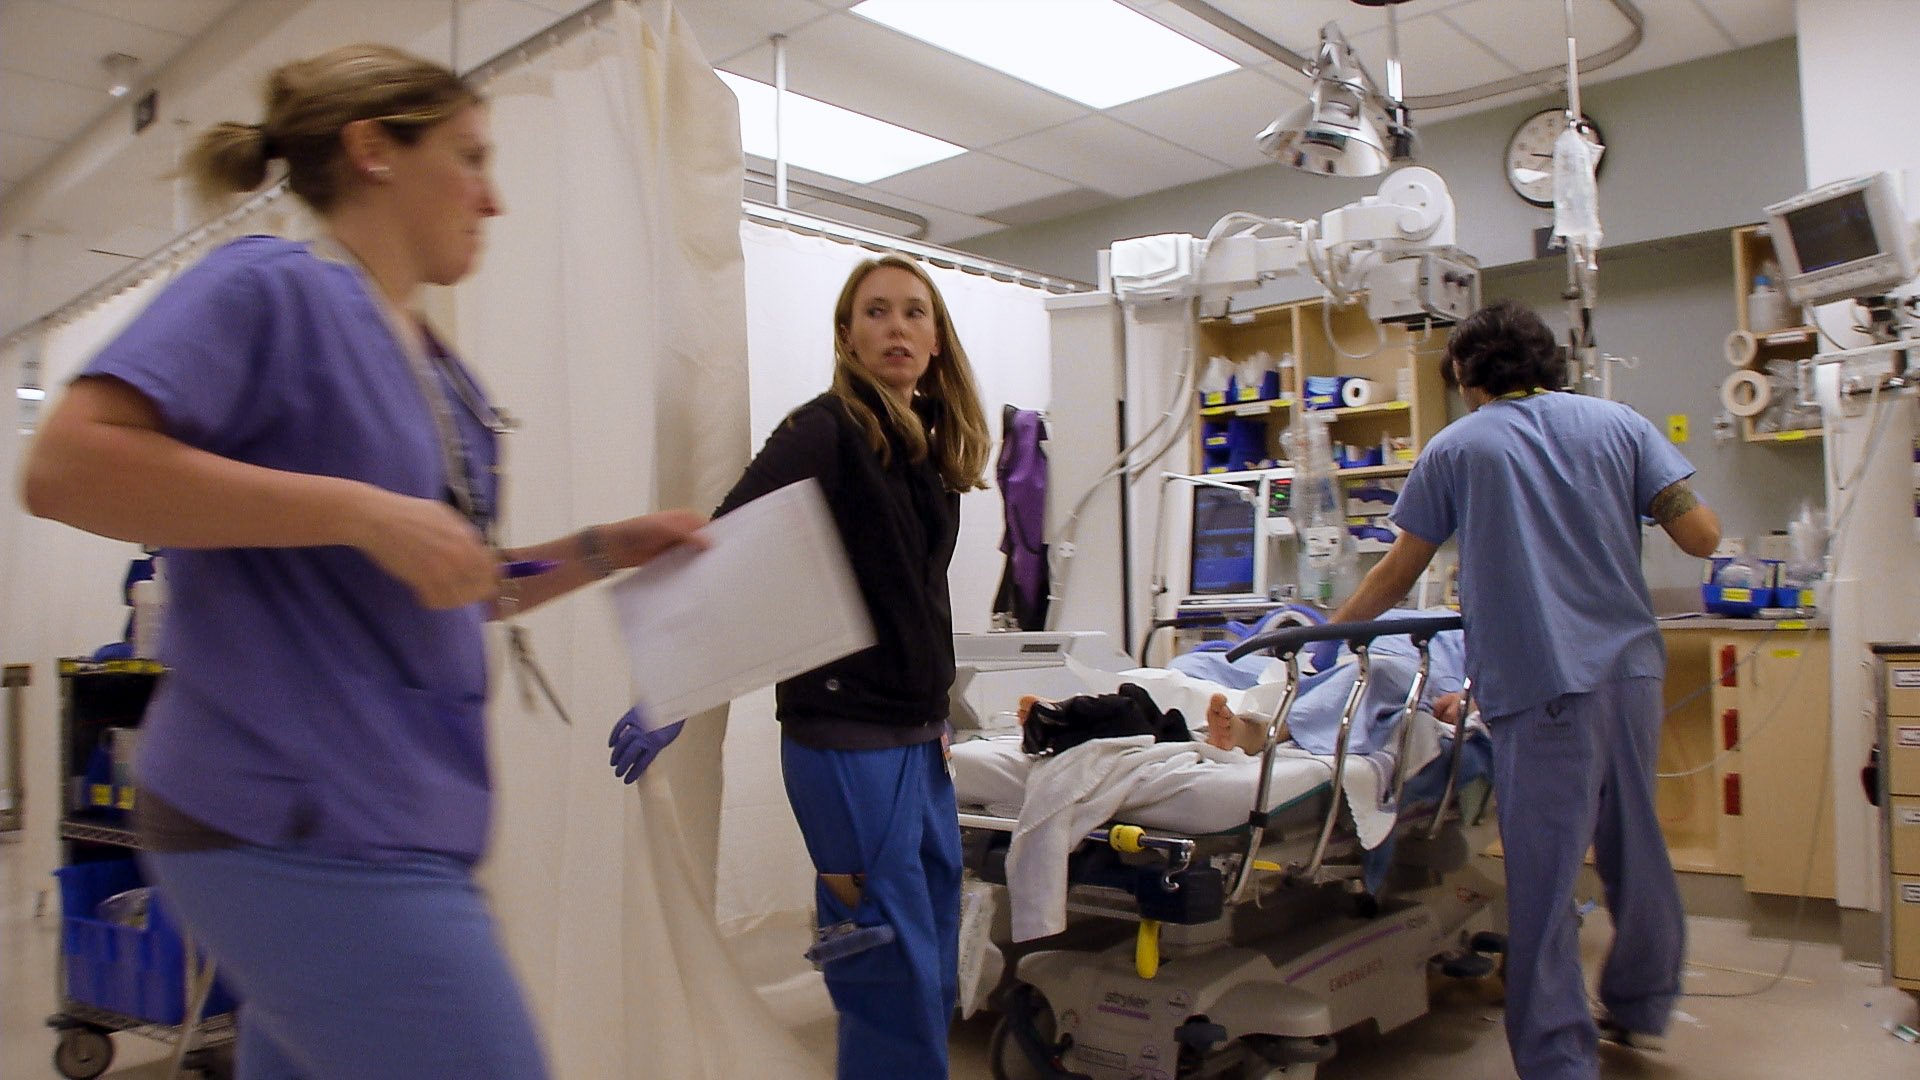 EMERGENCY ROOM: LIFE + DEATH AT VGH   Directed by Kevin Eastwood